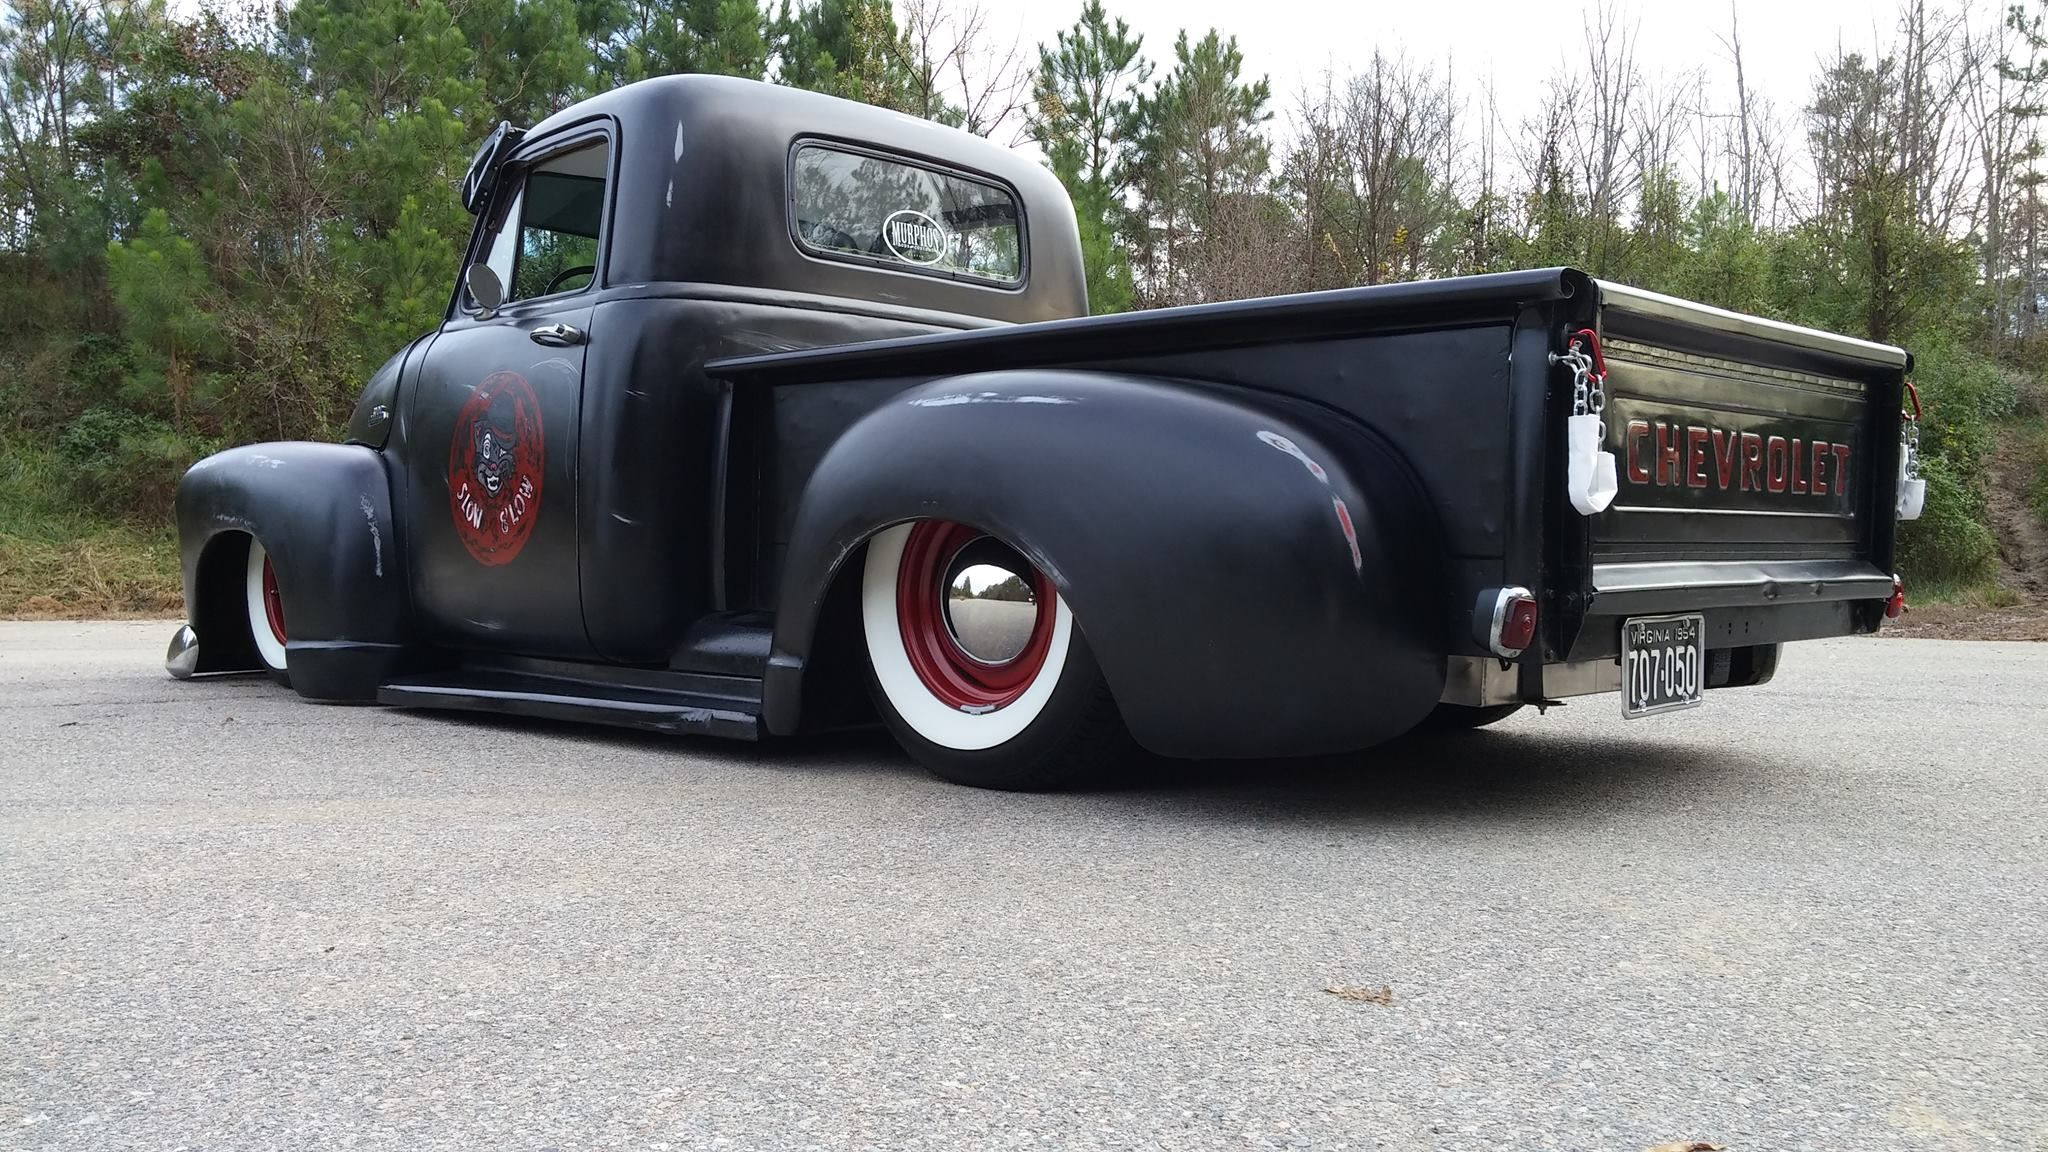 chev chevy chevrolet advance design pickup truck fauxtina faux tina patina satin black flat black paint with custom door graphics white wall tires on a set  [ 2048 x 1152 Pixel ]